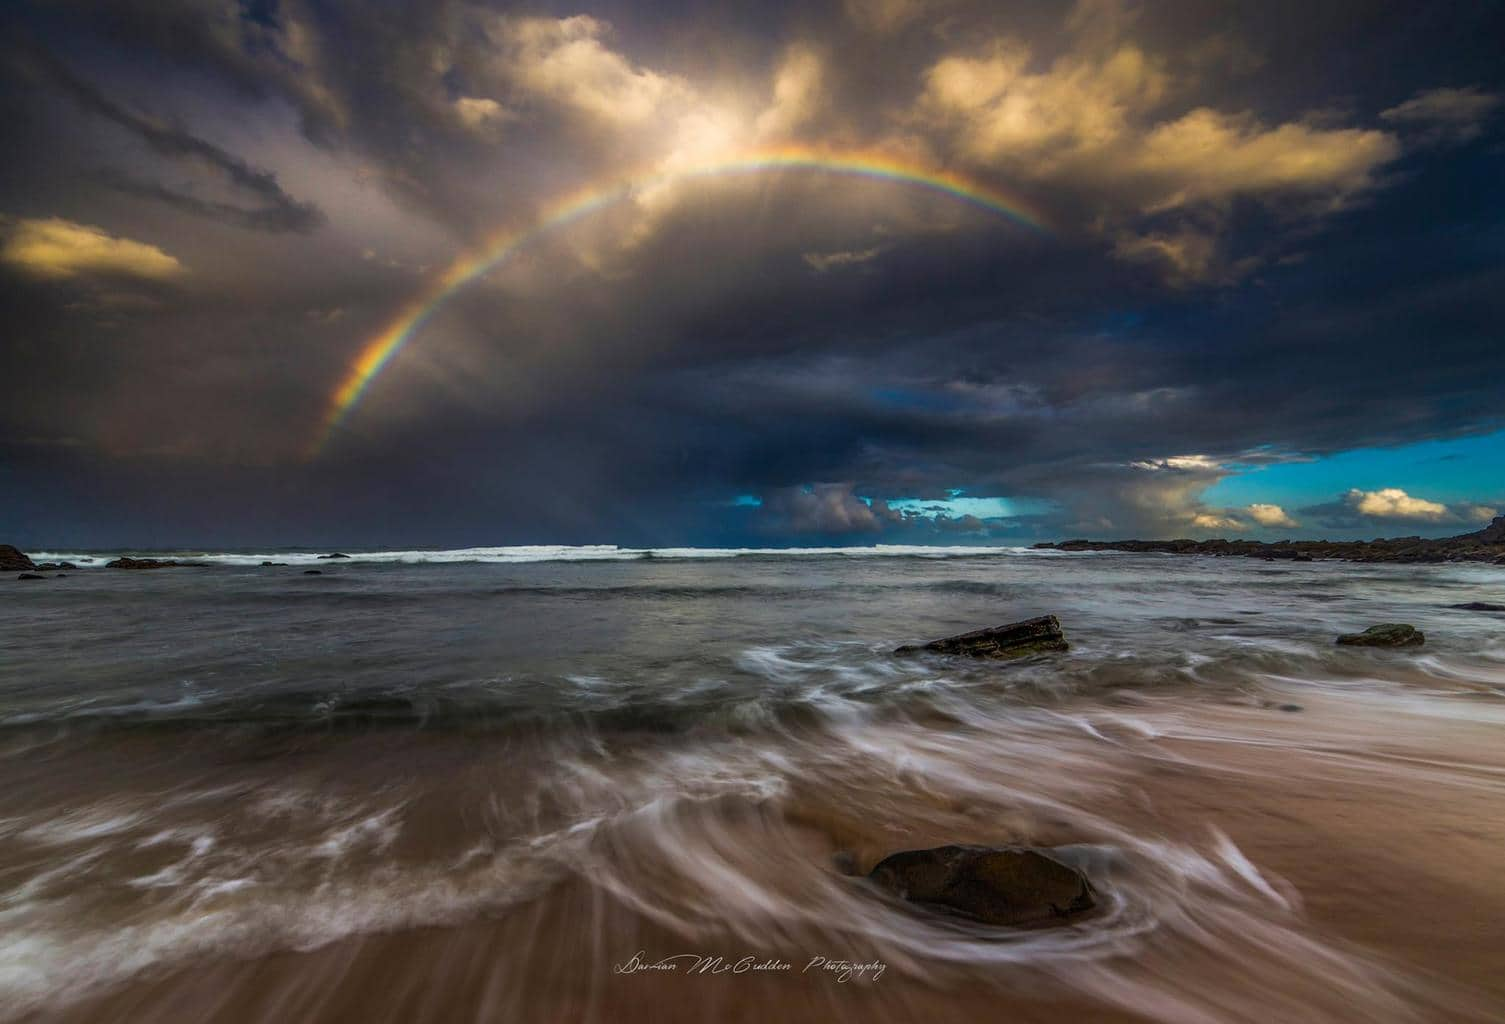 Hey everyone, I took this image of a rainbow after a heavy shower the other afternoon at Coolum, Australia.